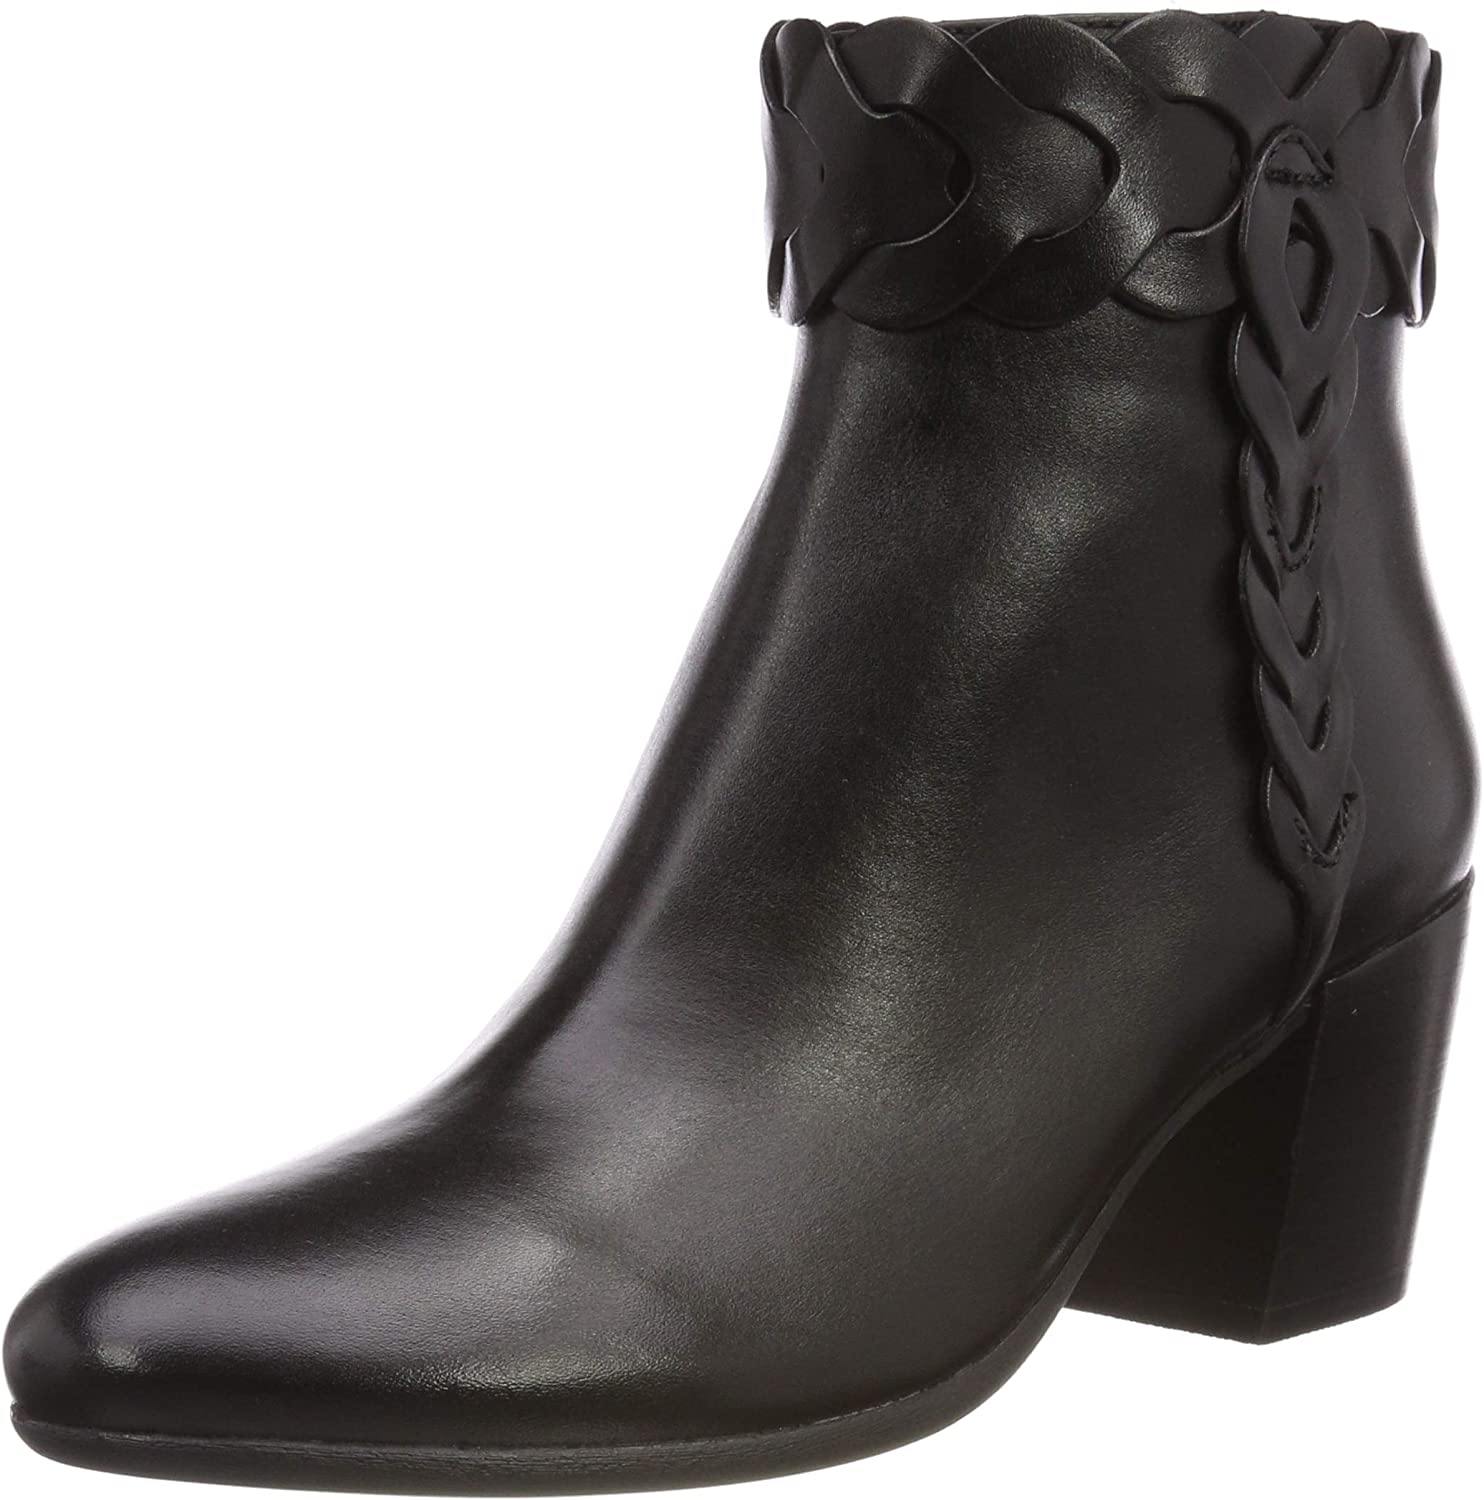 Geox Women's New Lucinda A Leather Boot